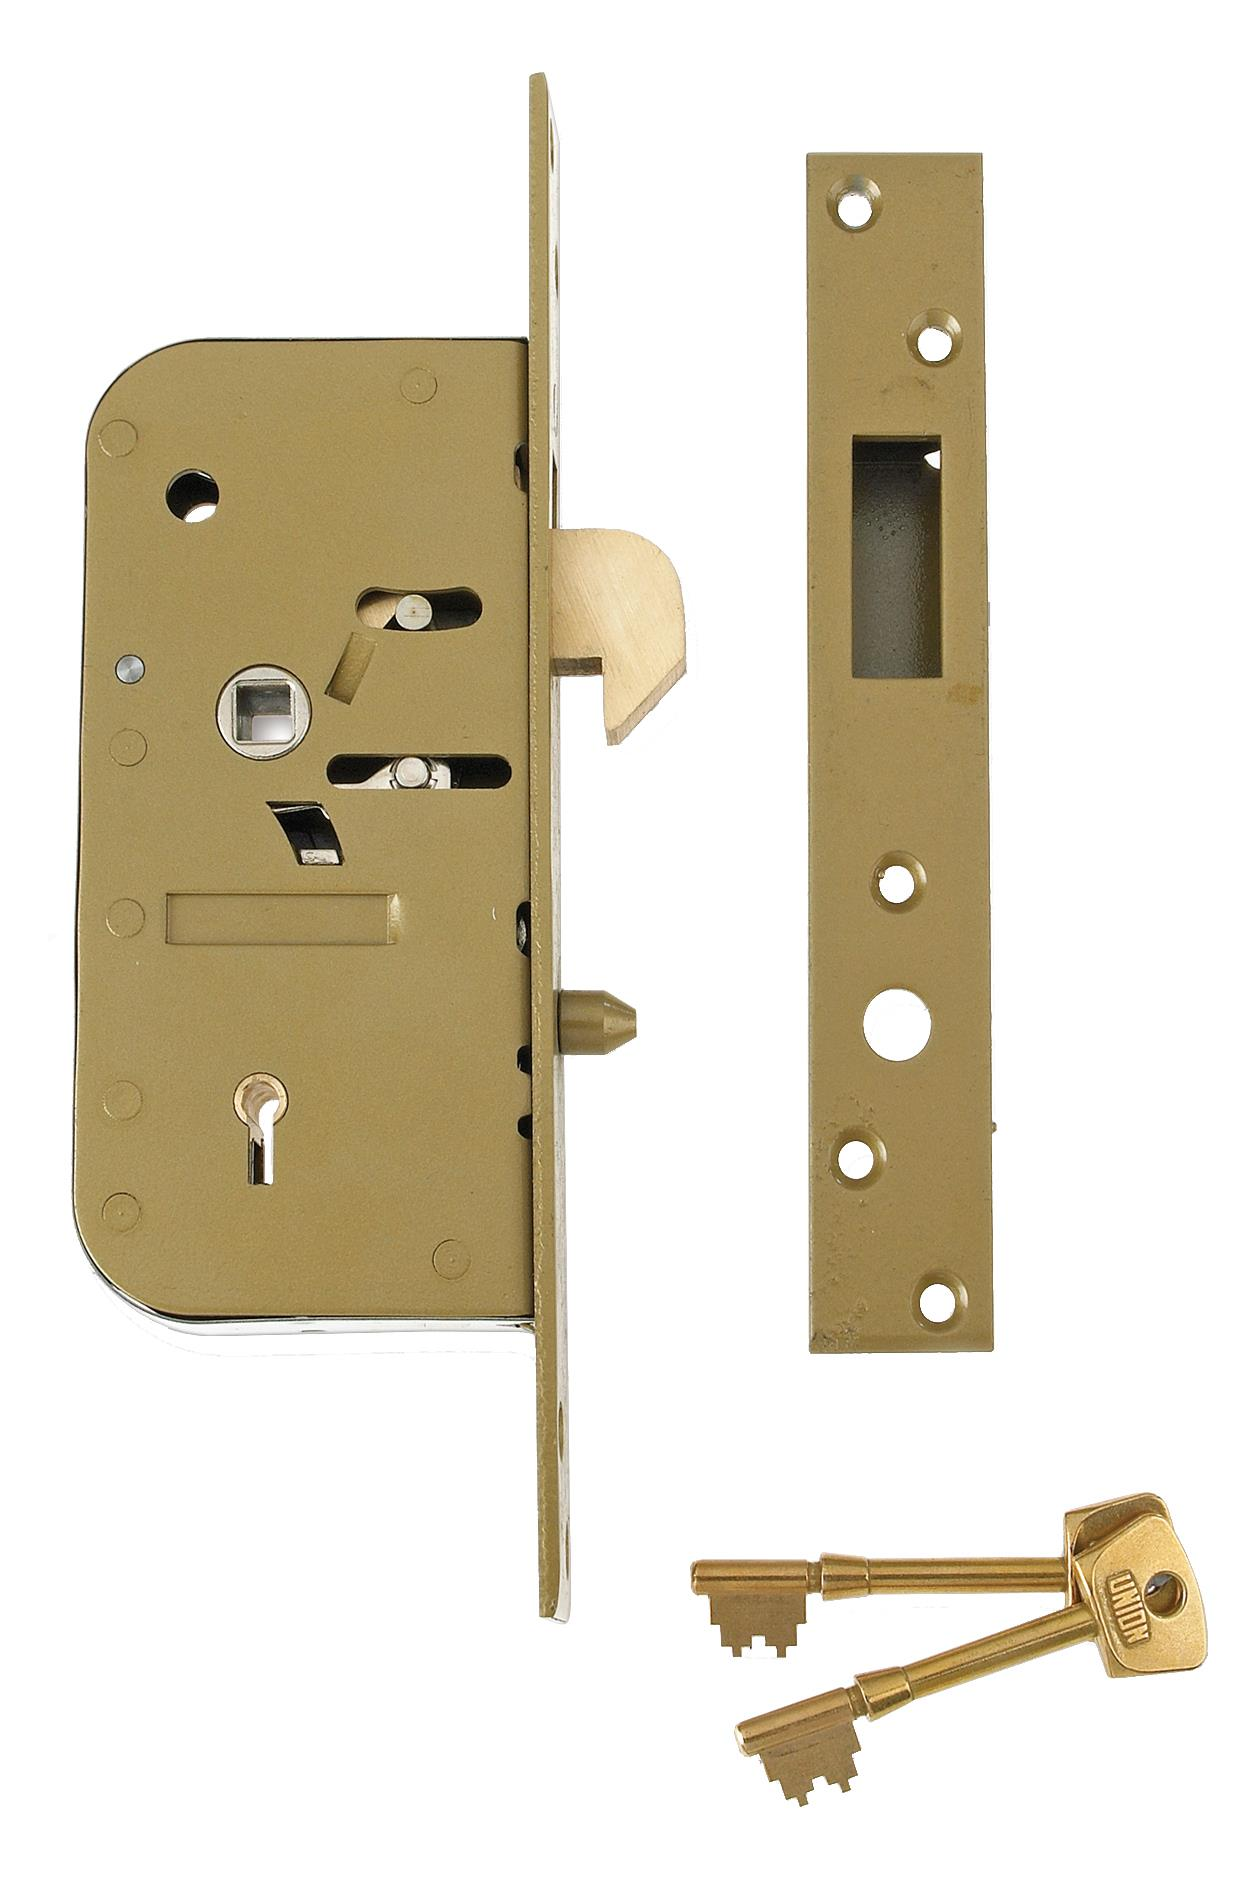 3M51 - 5 Detainer Clutch Mortice Lock